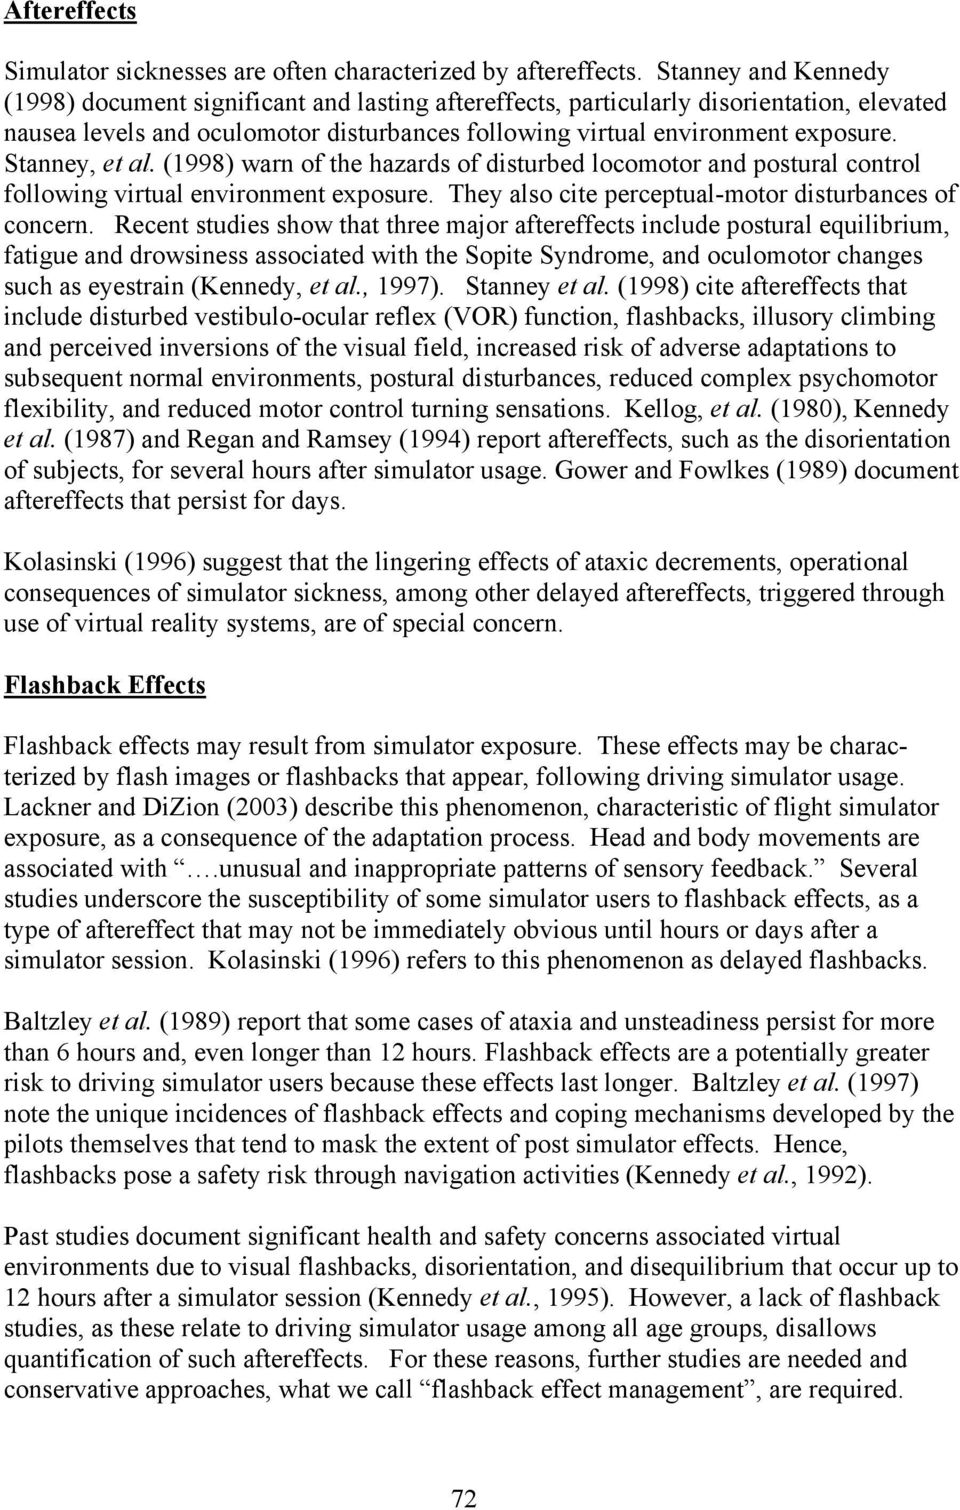 Stanney, et al. (1998) warn of the hazards of disturbed locomotor and postural control following virtual environment exposure. They also cite perceptual-motor disturbances of concern.